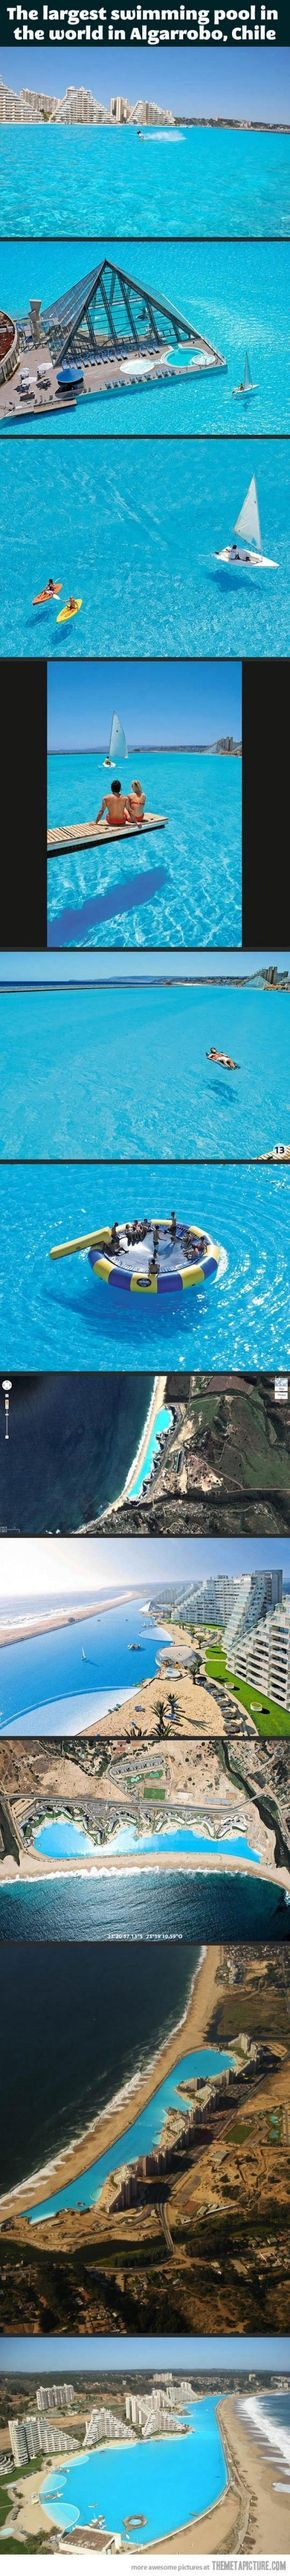 The largest and best swimming pool in the world